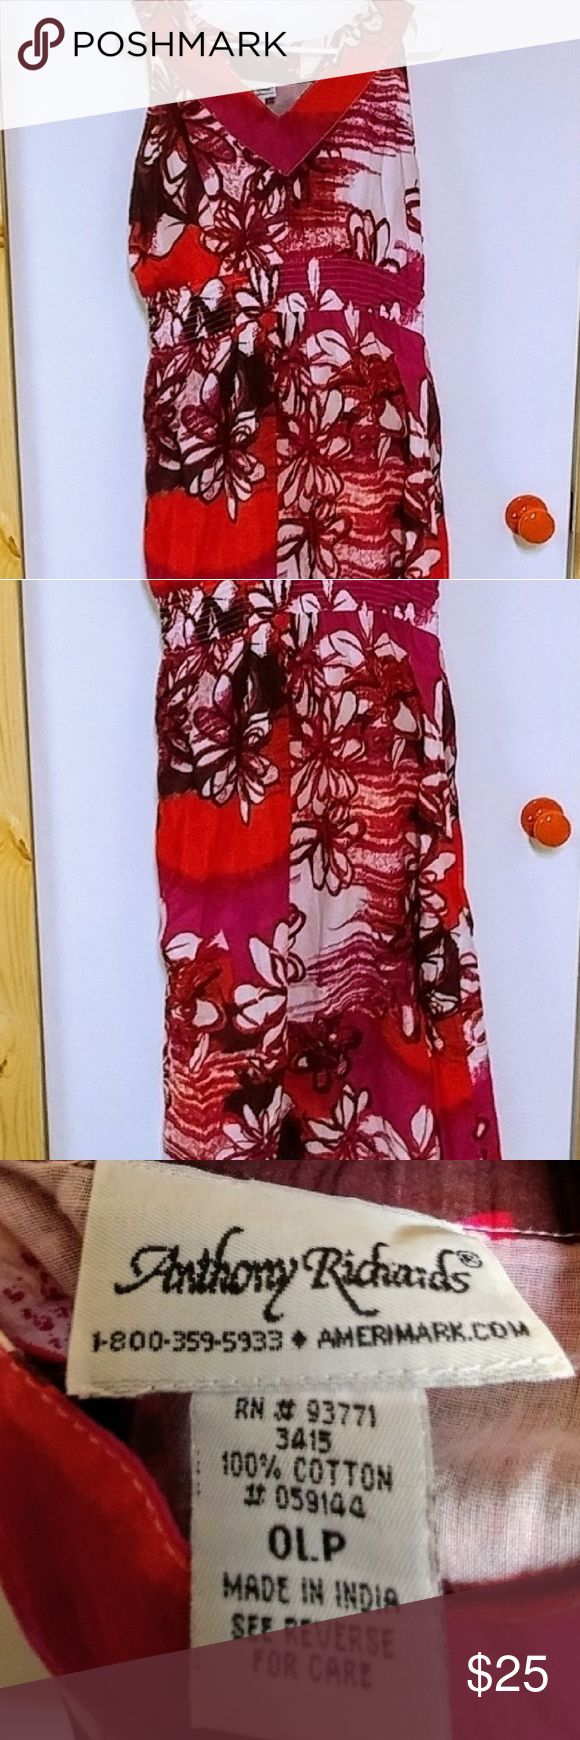 ✂SALE✂Floral Cotton Sundress Cotton Sundress Sz 0LP not sure the meaning of that but I am an xl or 1x and this fit great. Elastic stretchy under bust Soft light gauze cotton with soft light gauze lining.  Very pretty and comfortable. Excellent condition Dresses Midi